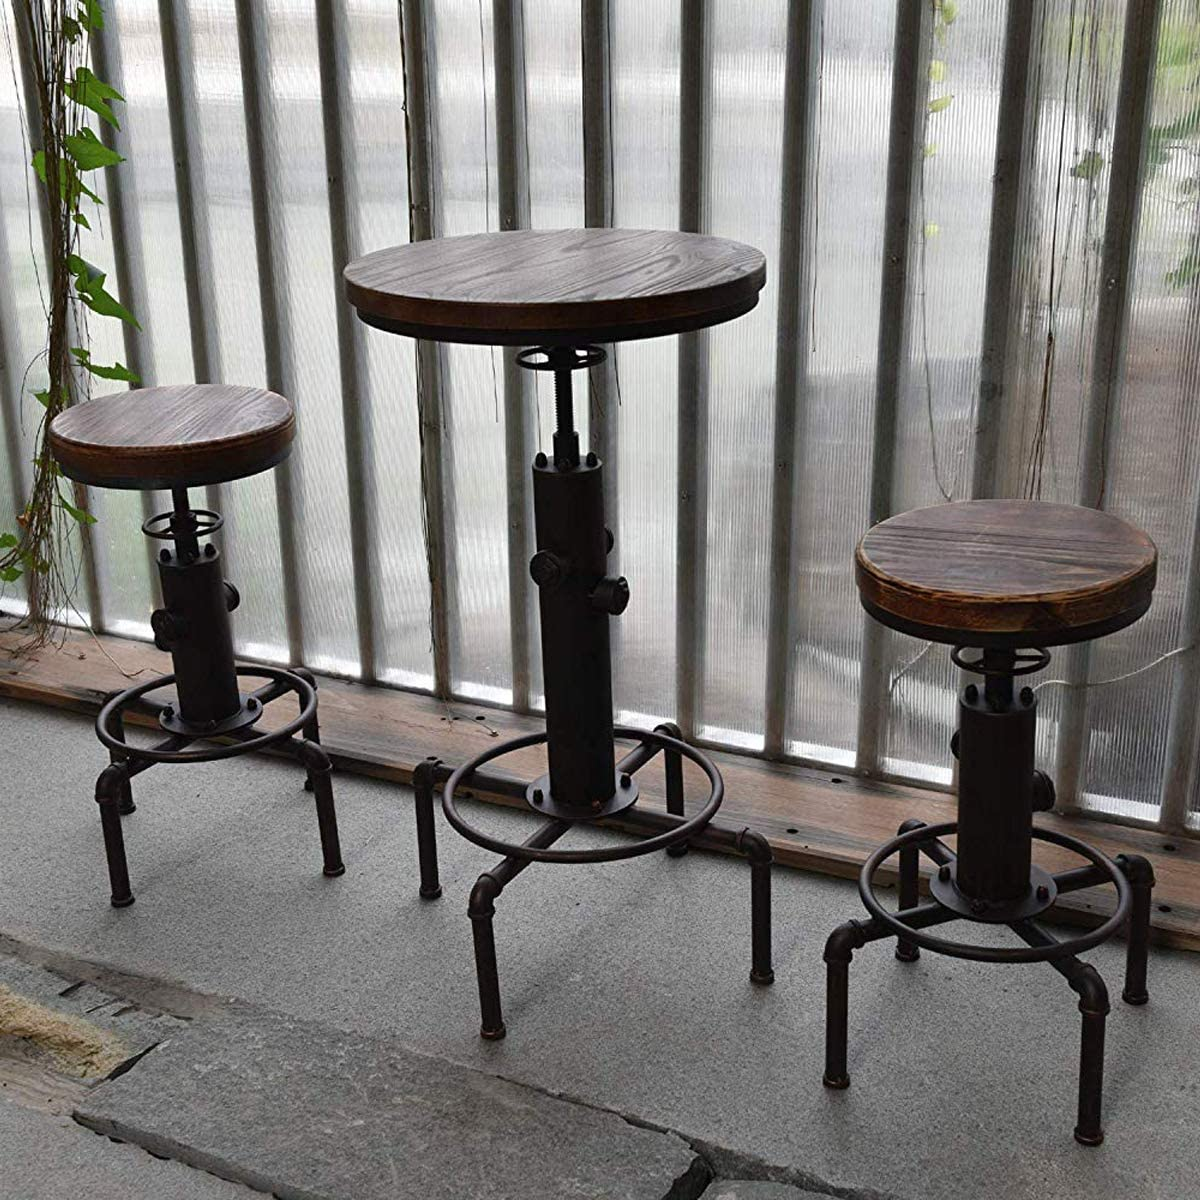 Industrial Barstool Solid Wood Water Pipe Fire Hydrant steampunk home decor ideas